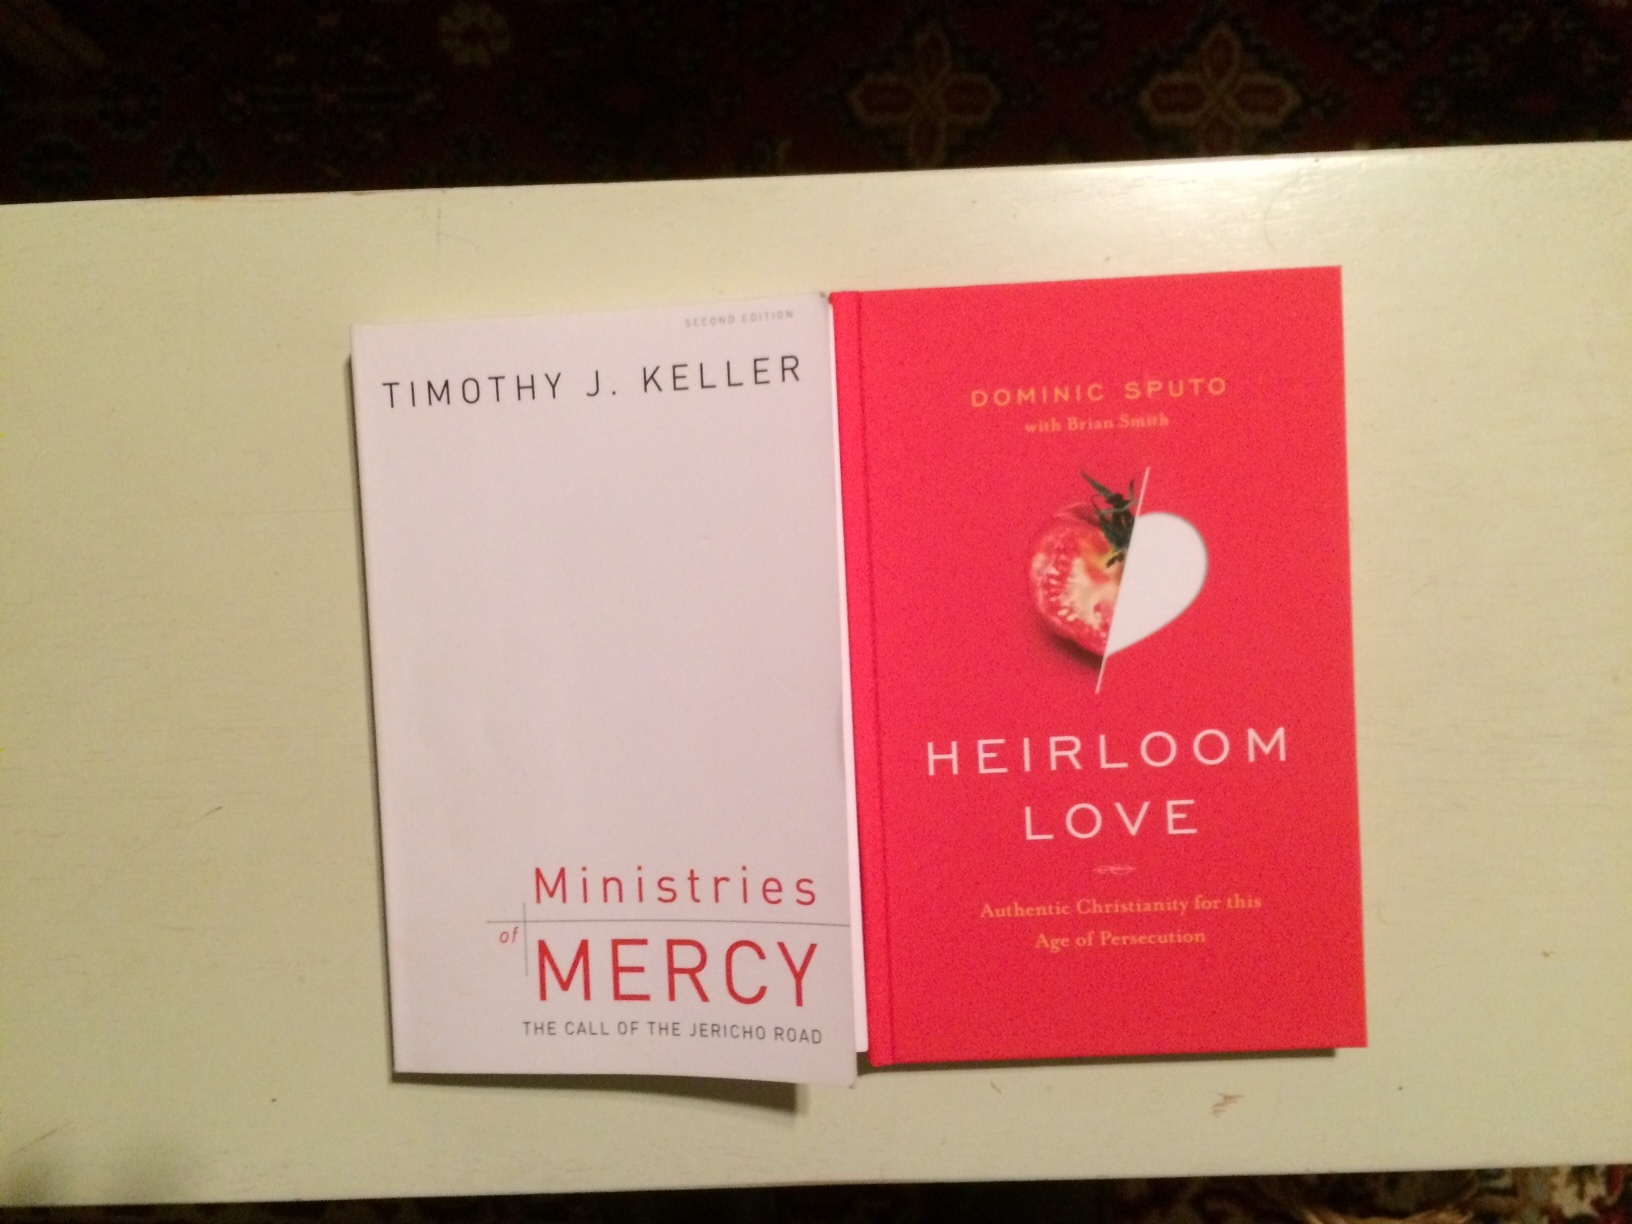 2 Books on ministry